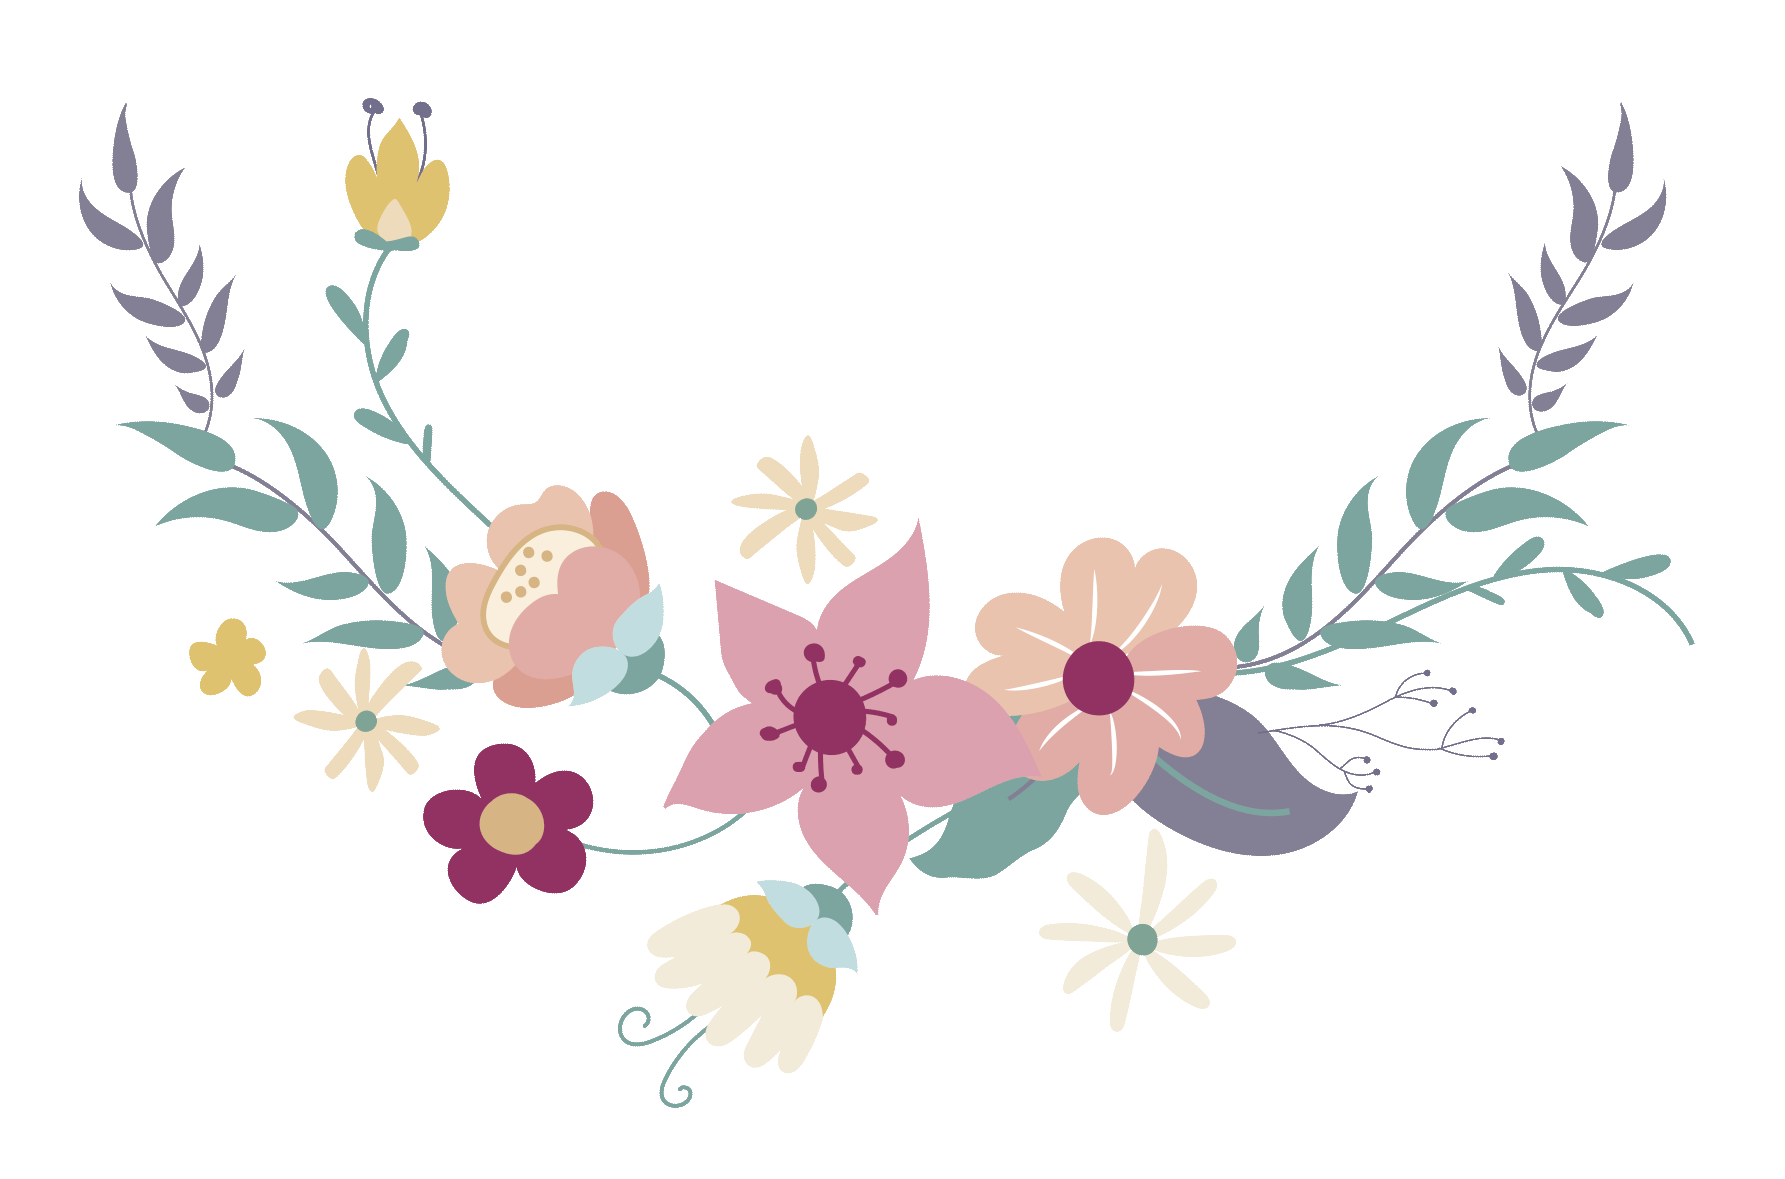 Flower arrow clipart. Im genes para invitaciones